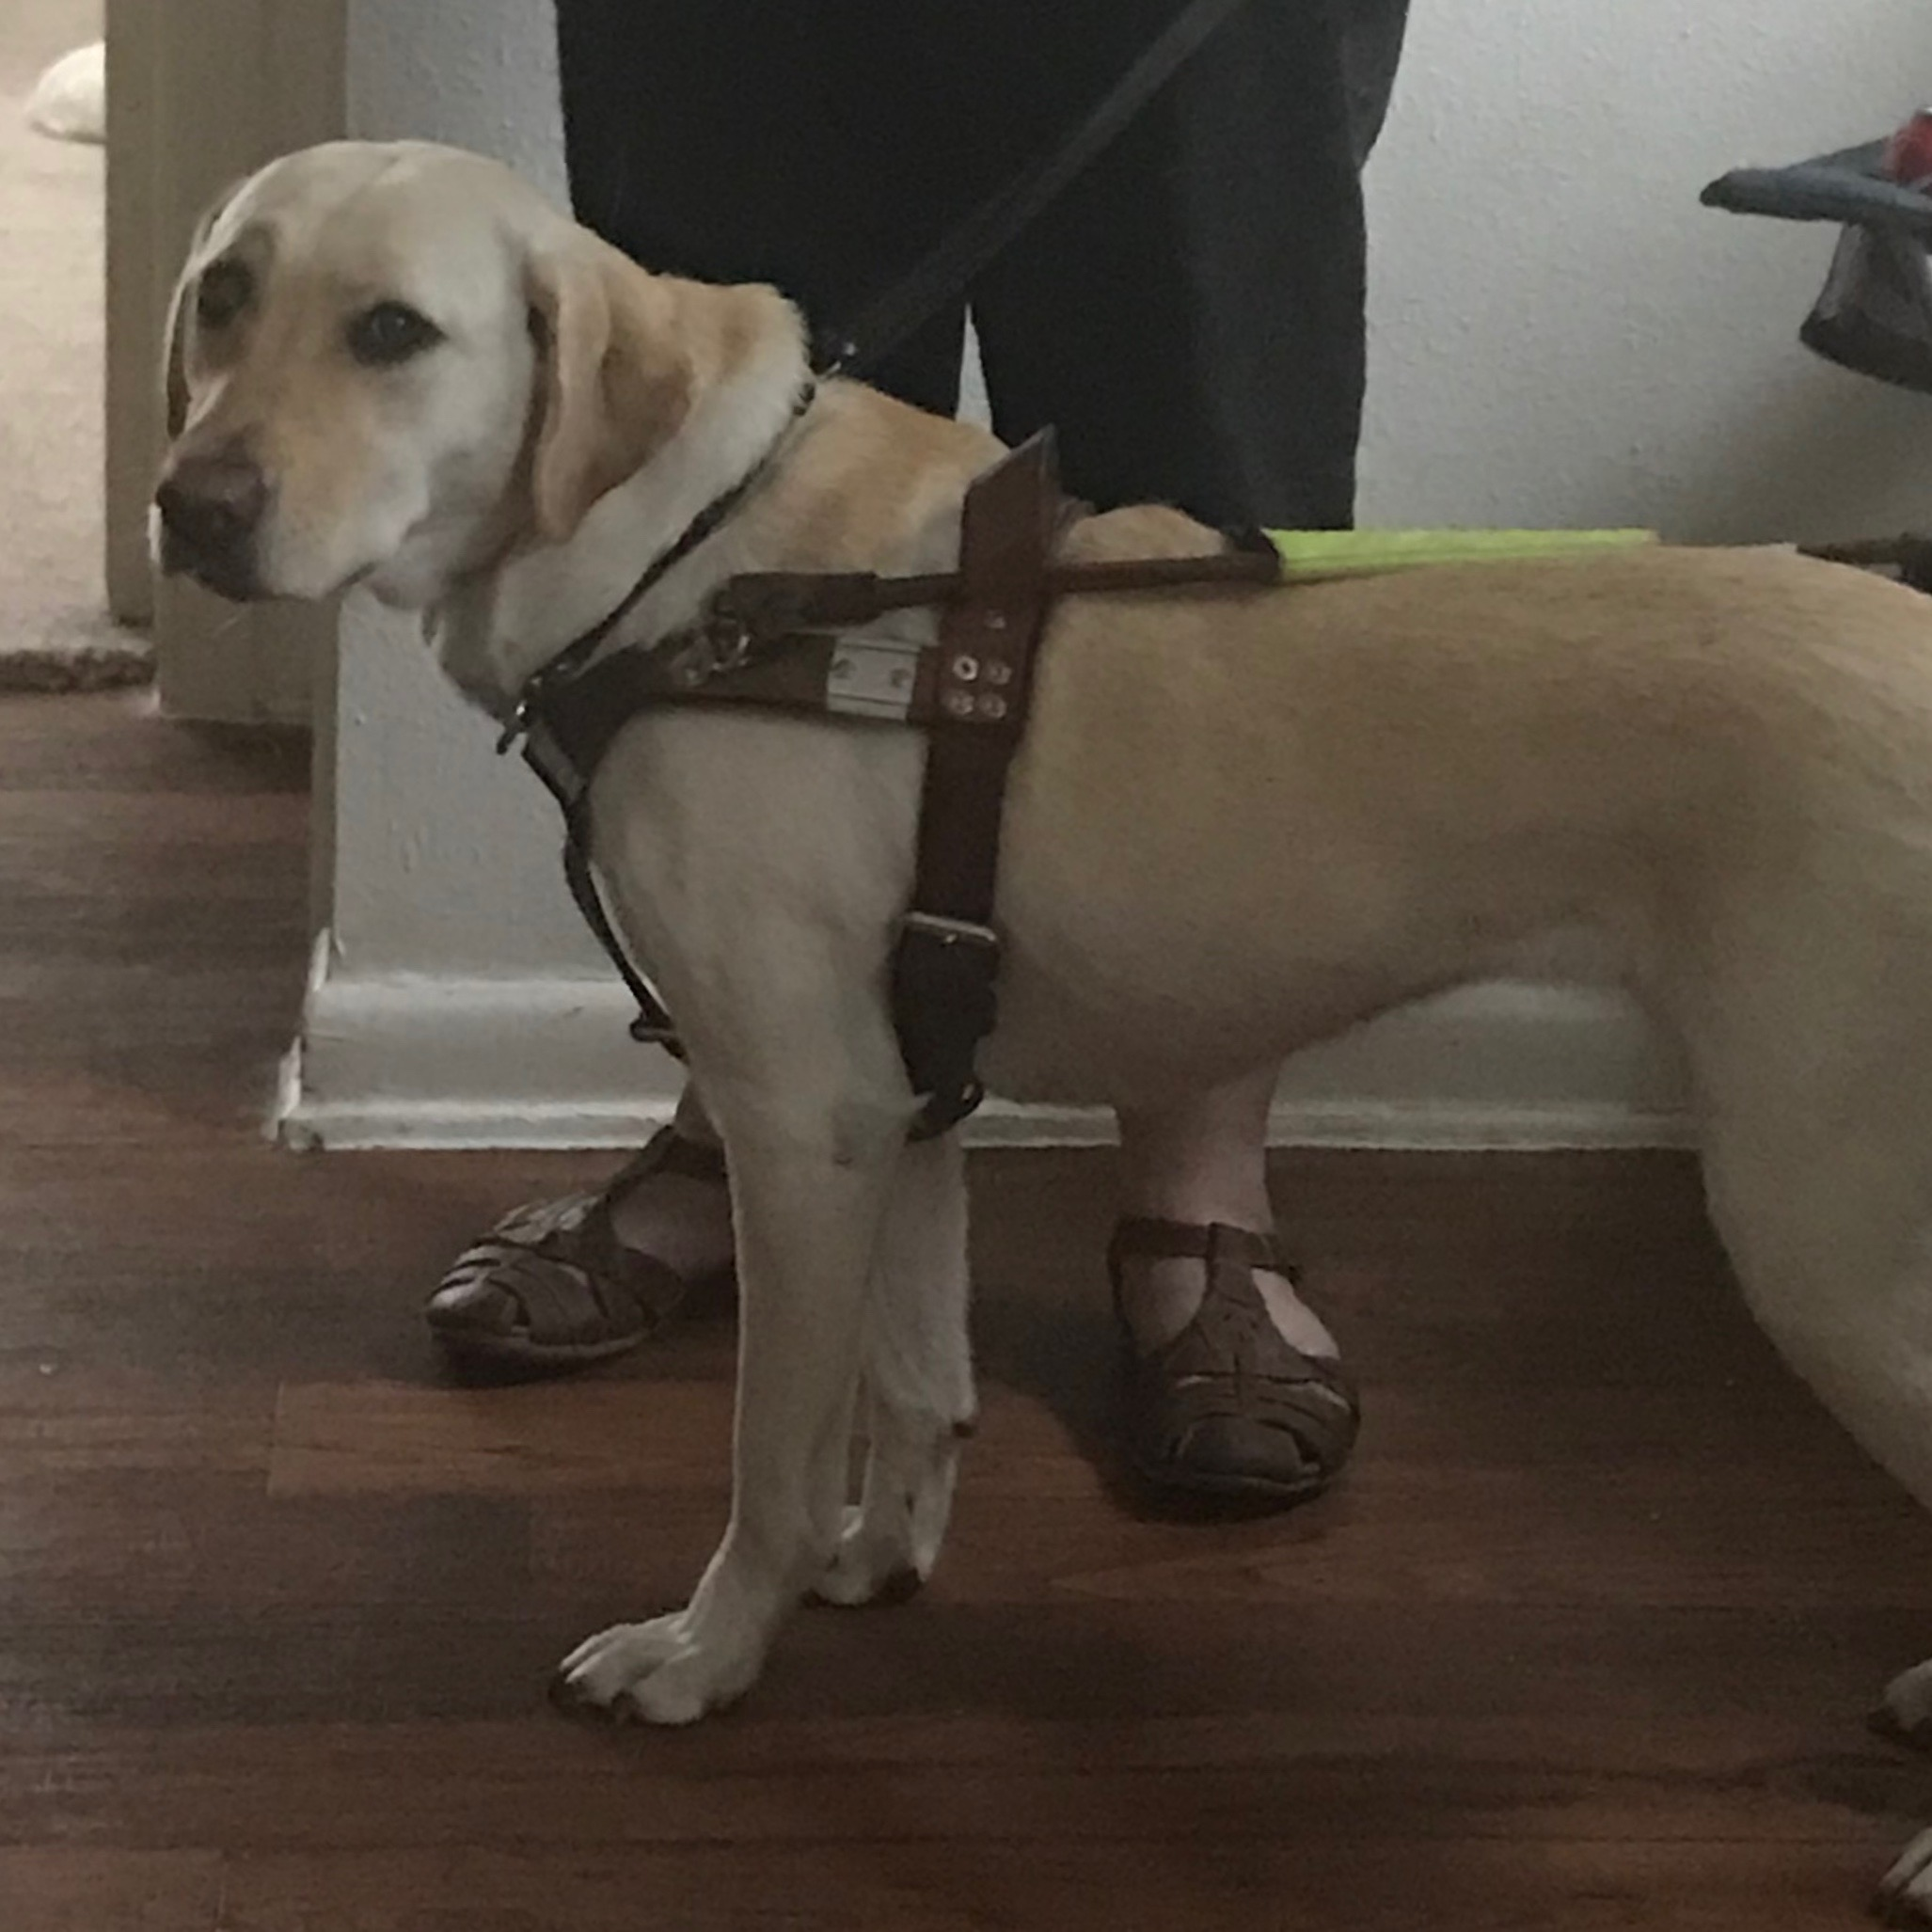 A Guide dog in Harness